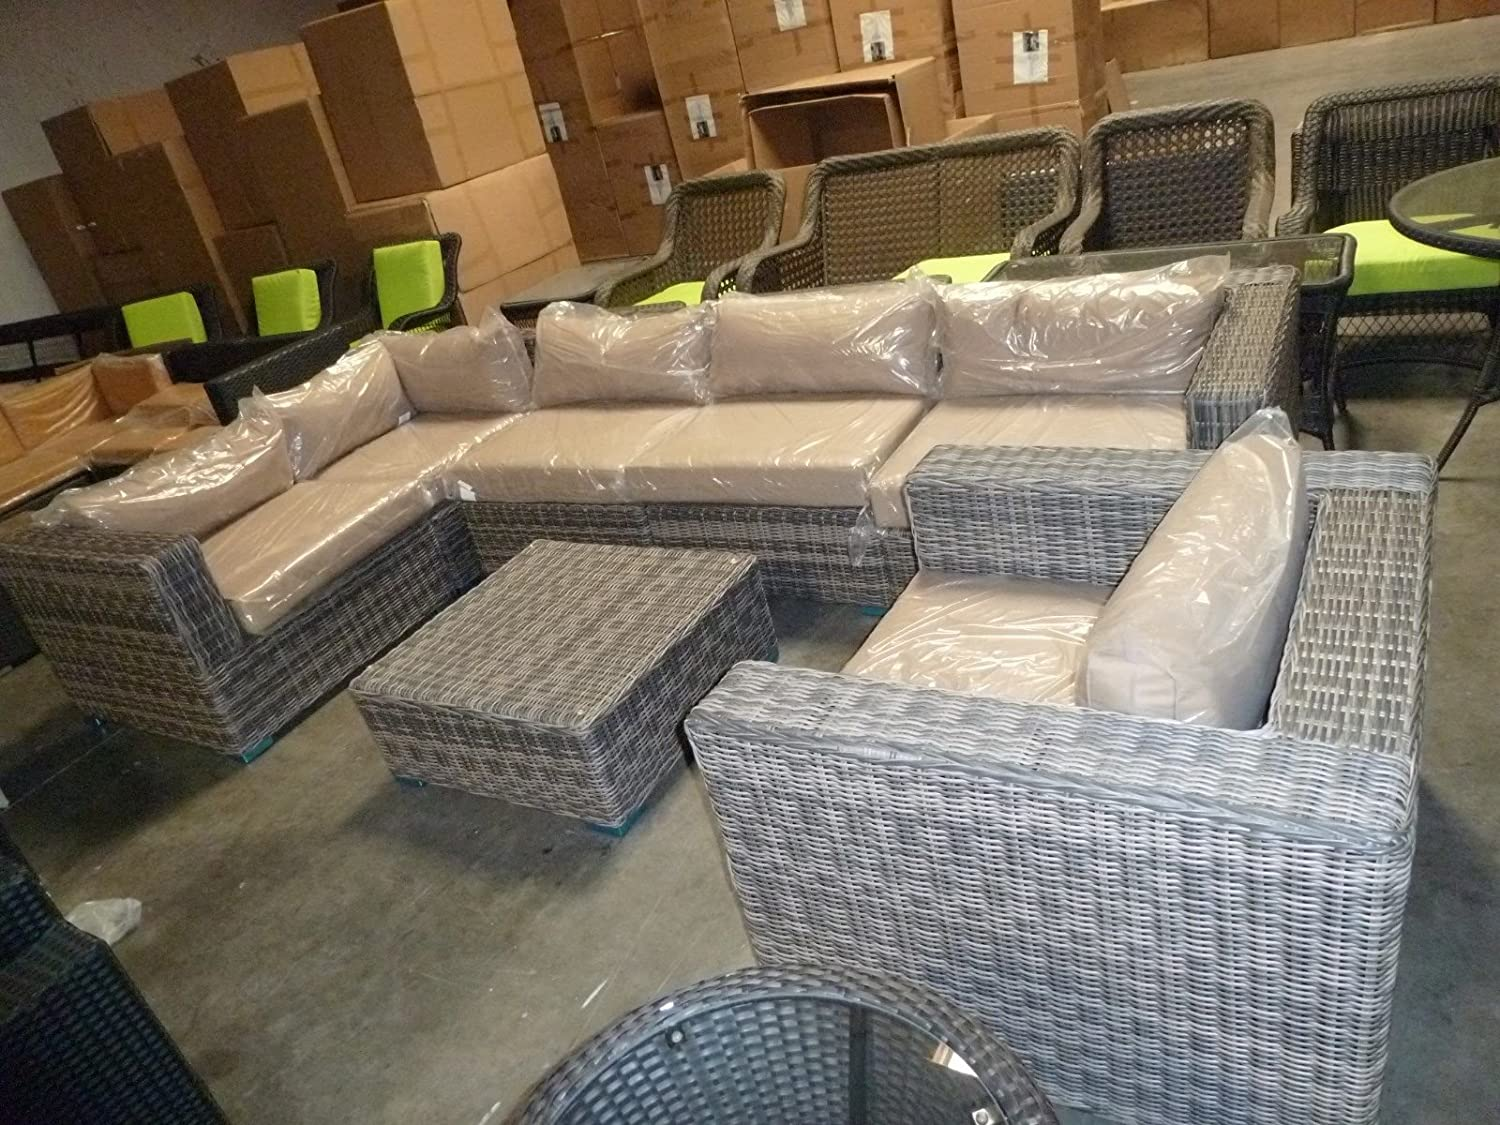 Amazon distressed outdoor wicker sectional sofa chair coffee amazon distressed outdoor wicker sectional sofa chair coffee table patio furniture set garden outdoor geotapseo Image collections